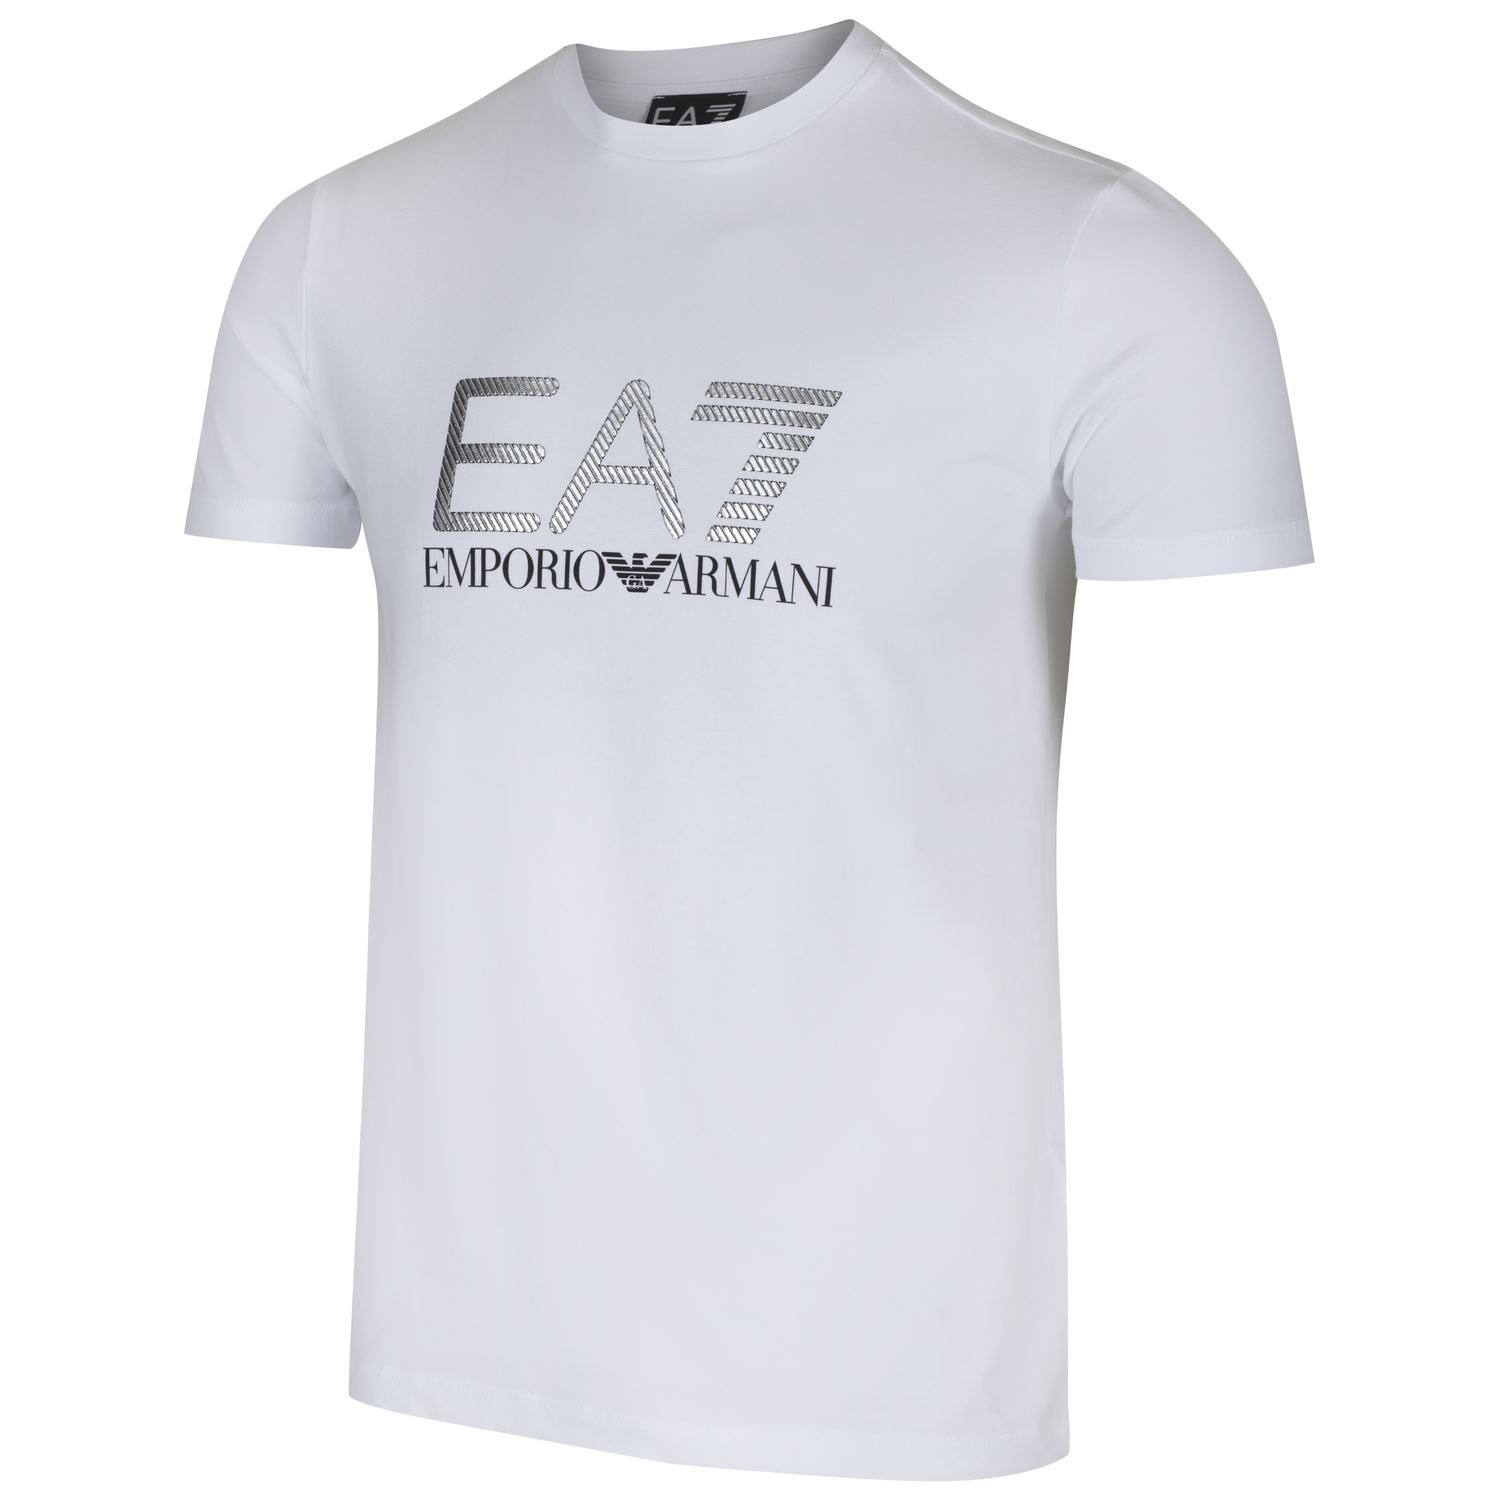 T shirt white ebay - Emporio Armani Ea7 Men S Train Graphic Crew Neck T Shirt White Navy Sizes S Xxl